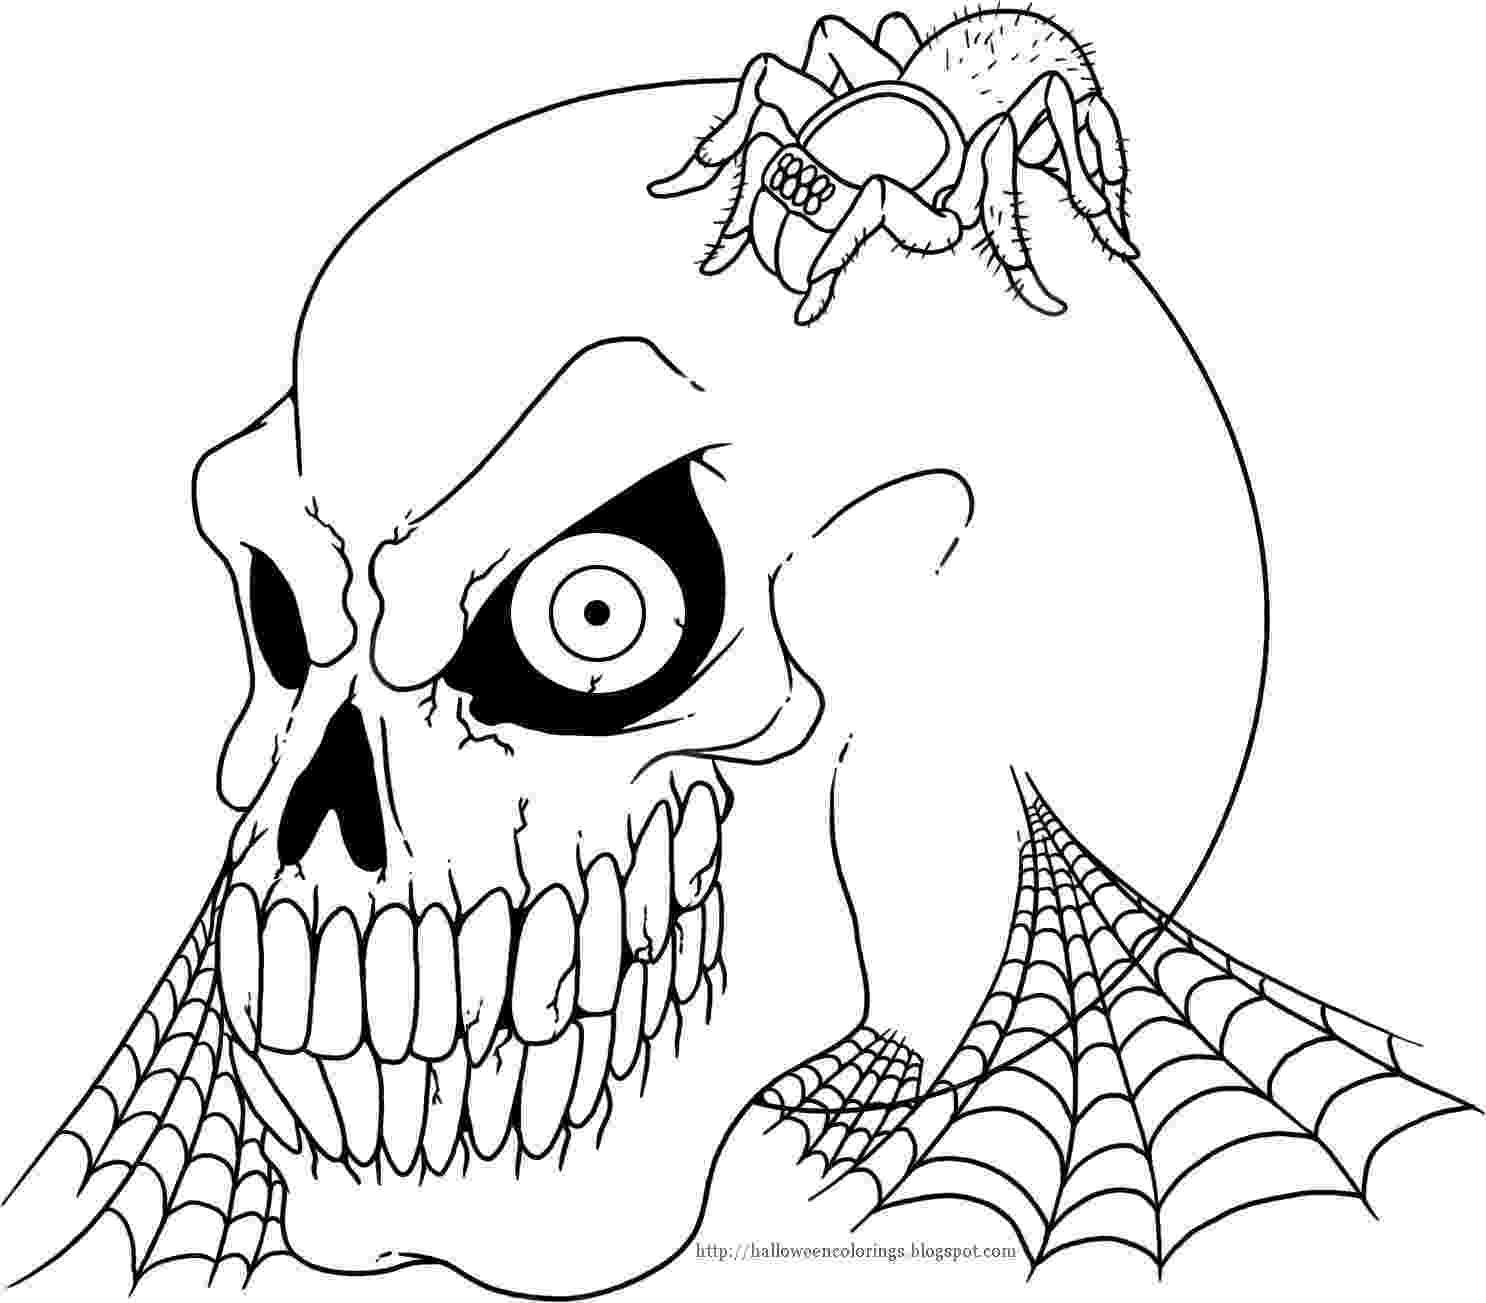 coloring page halloween printable free halloween coloring pages for kids or for the kid in coloring halloween page printable